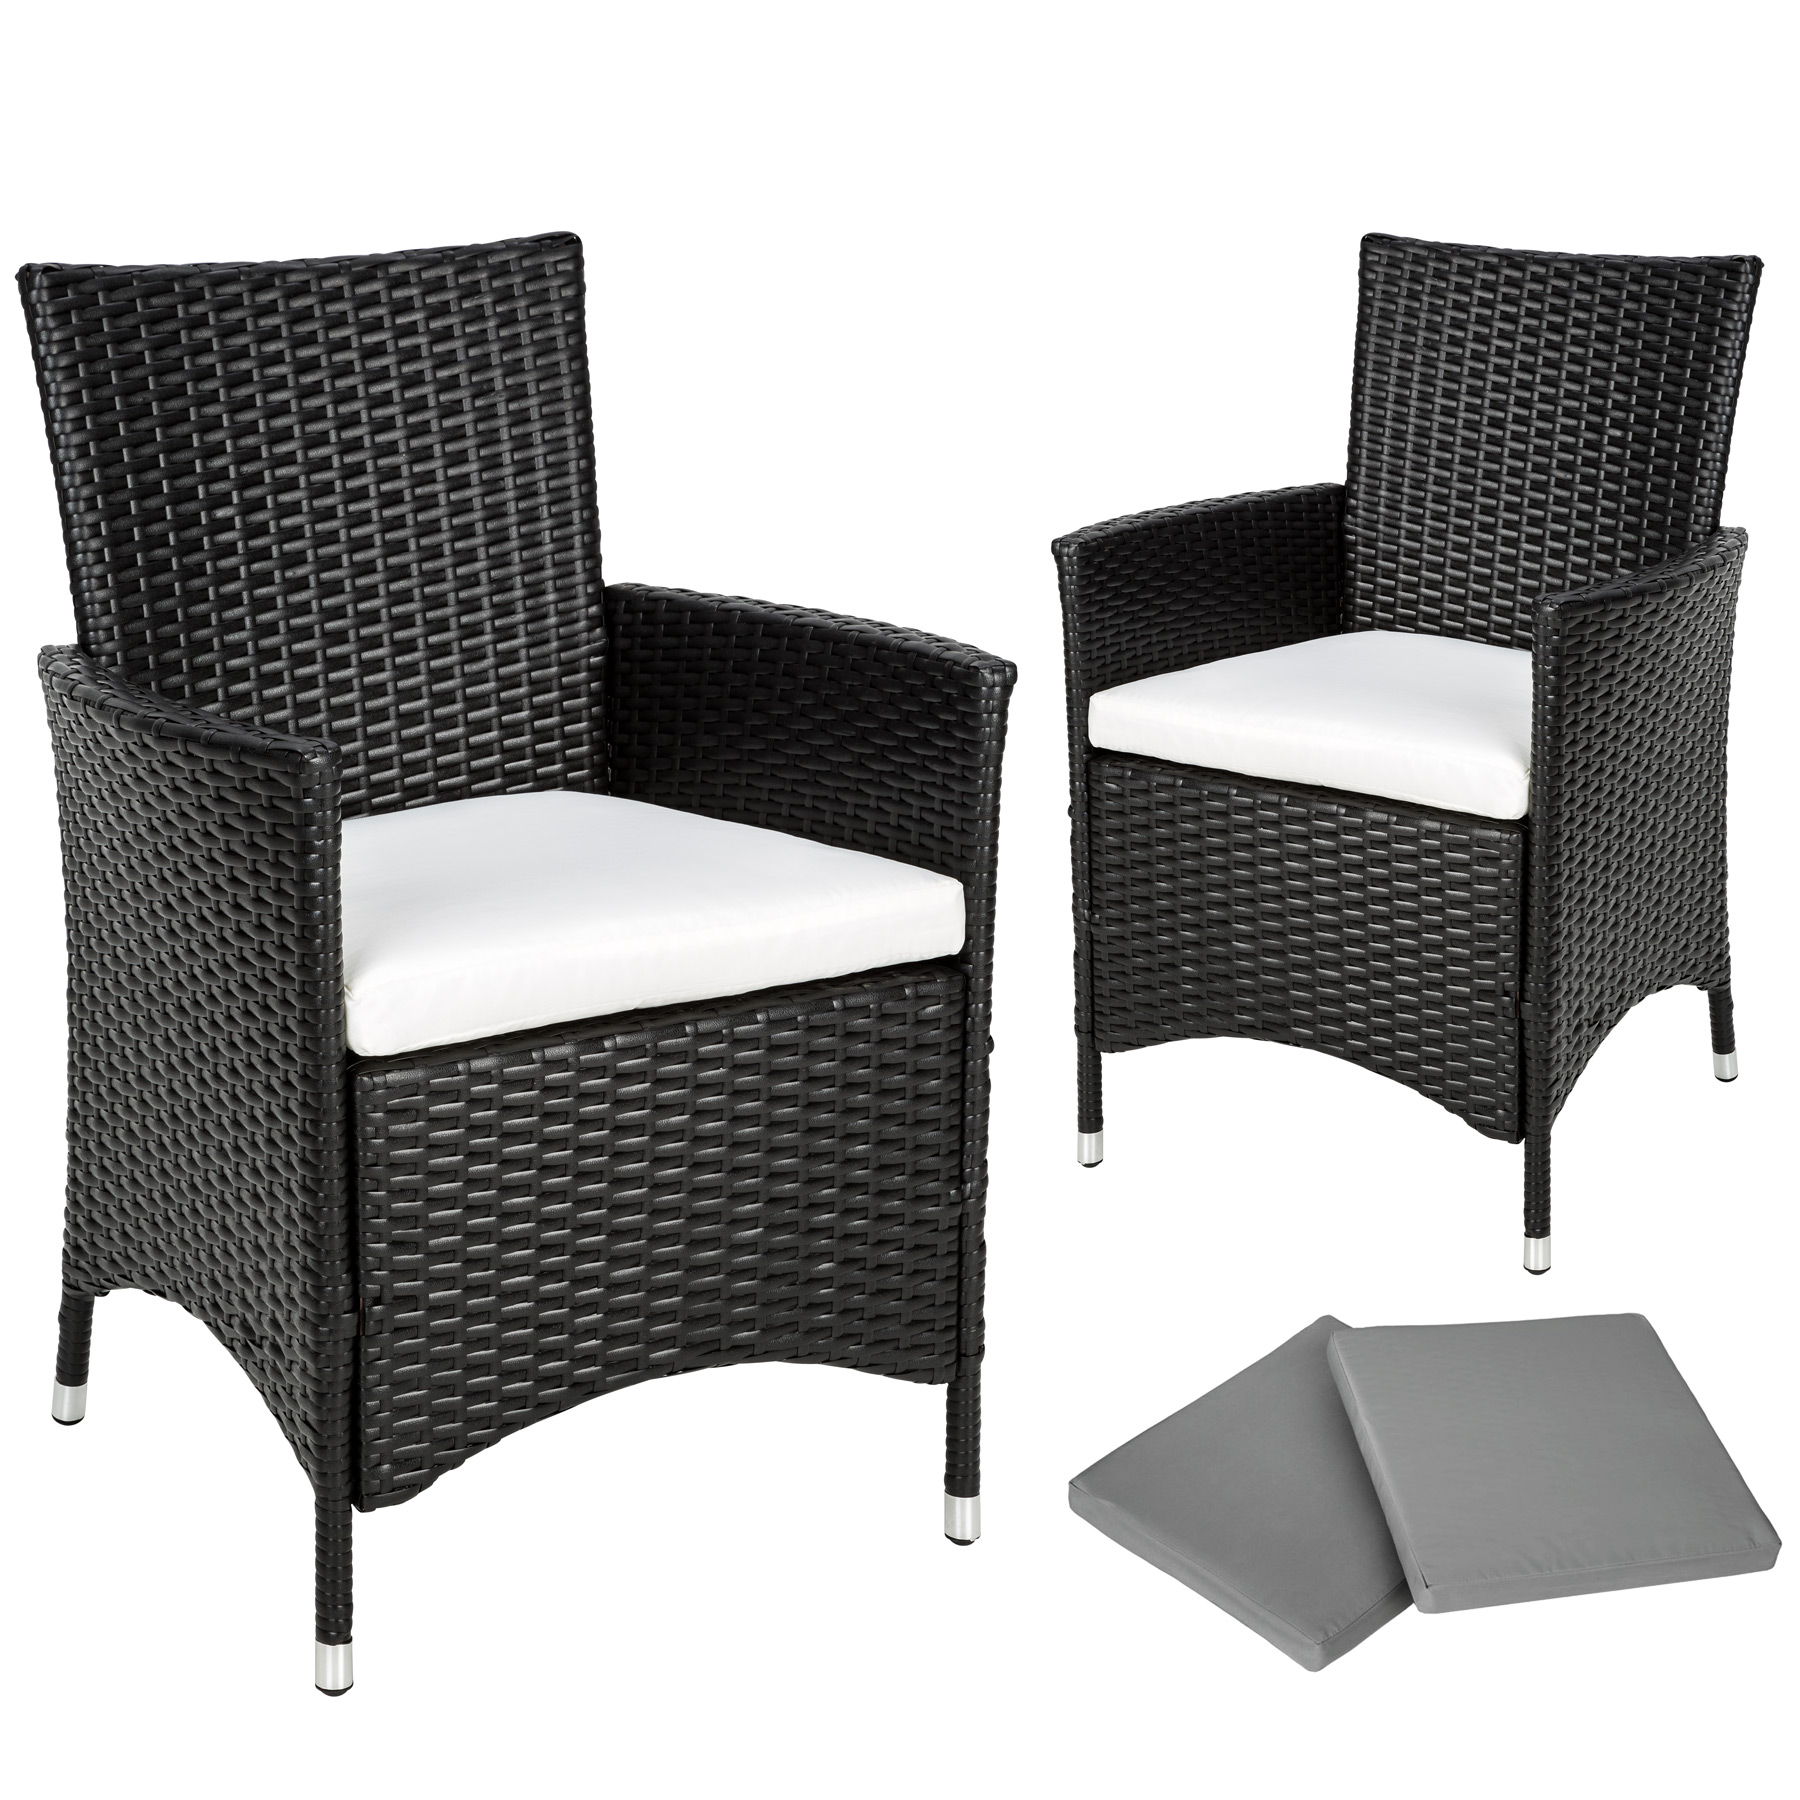 2x chaise de jardin noir si ge rotin fauteuil r sine tress en alu coussin ebay. Black Bedroom Furniture Sets. Home Design Ideas